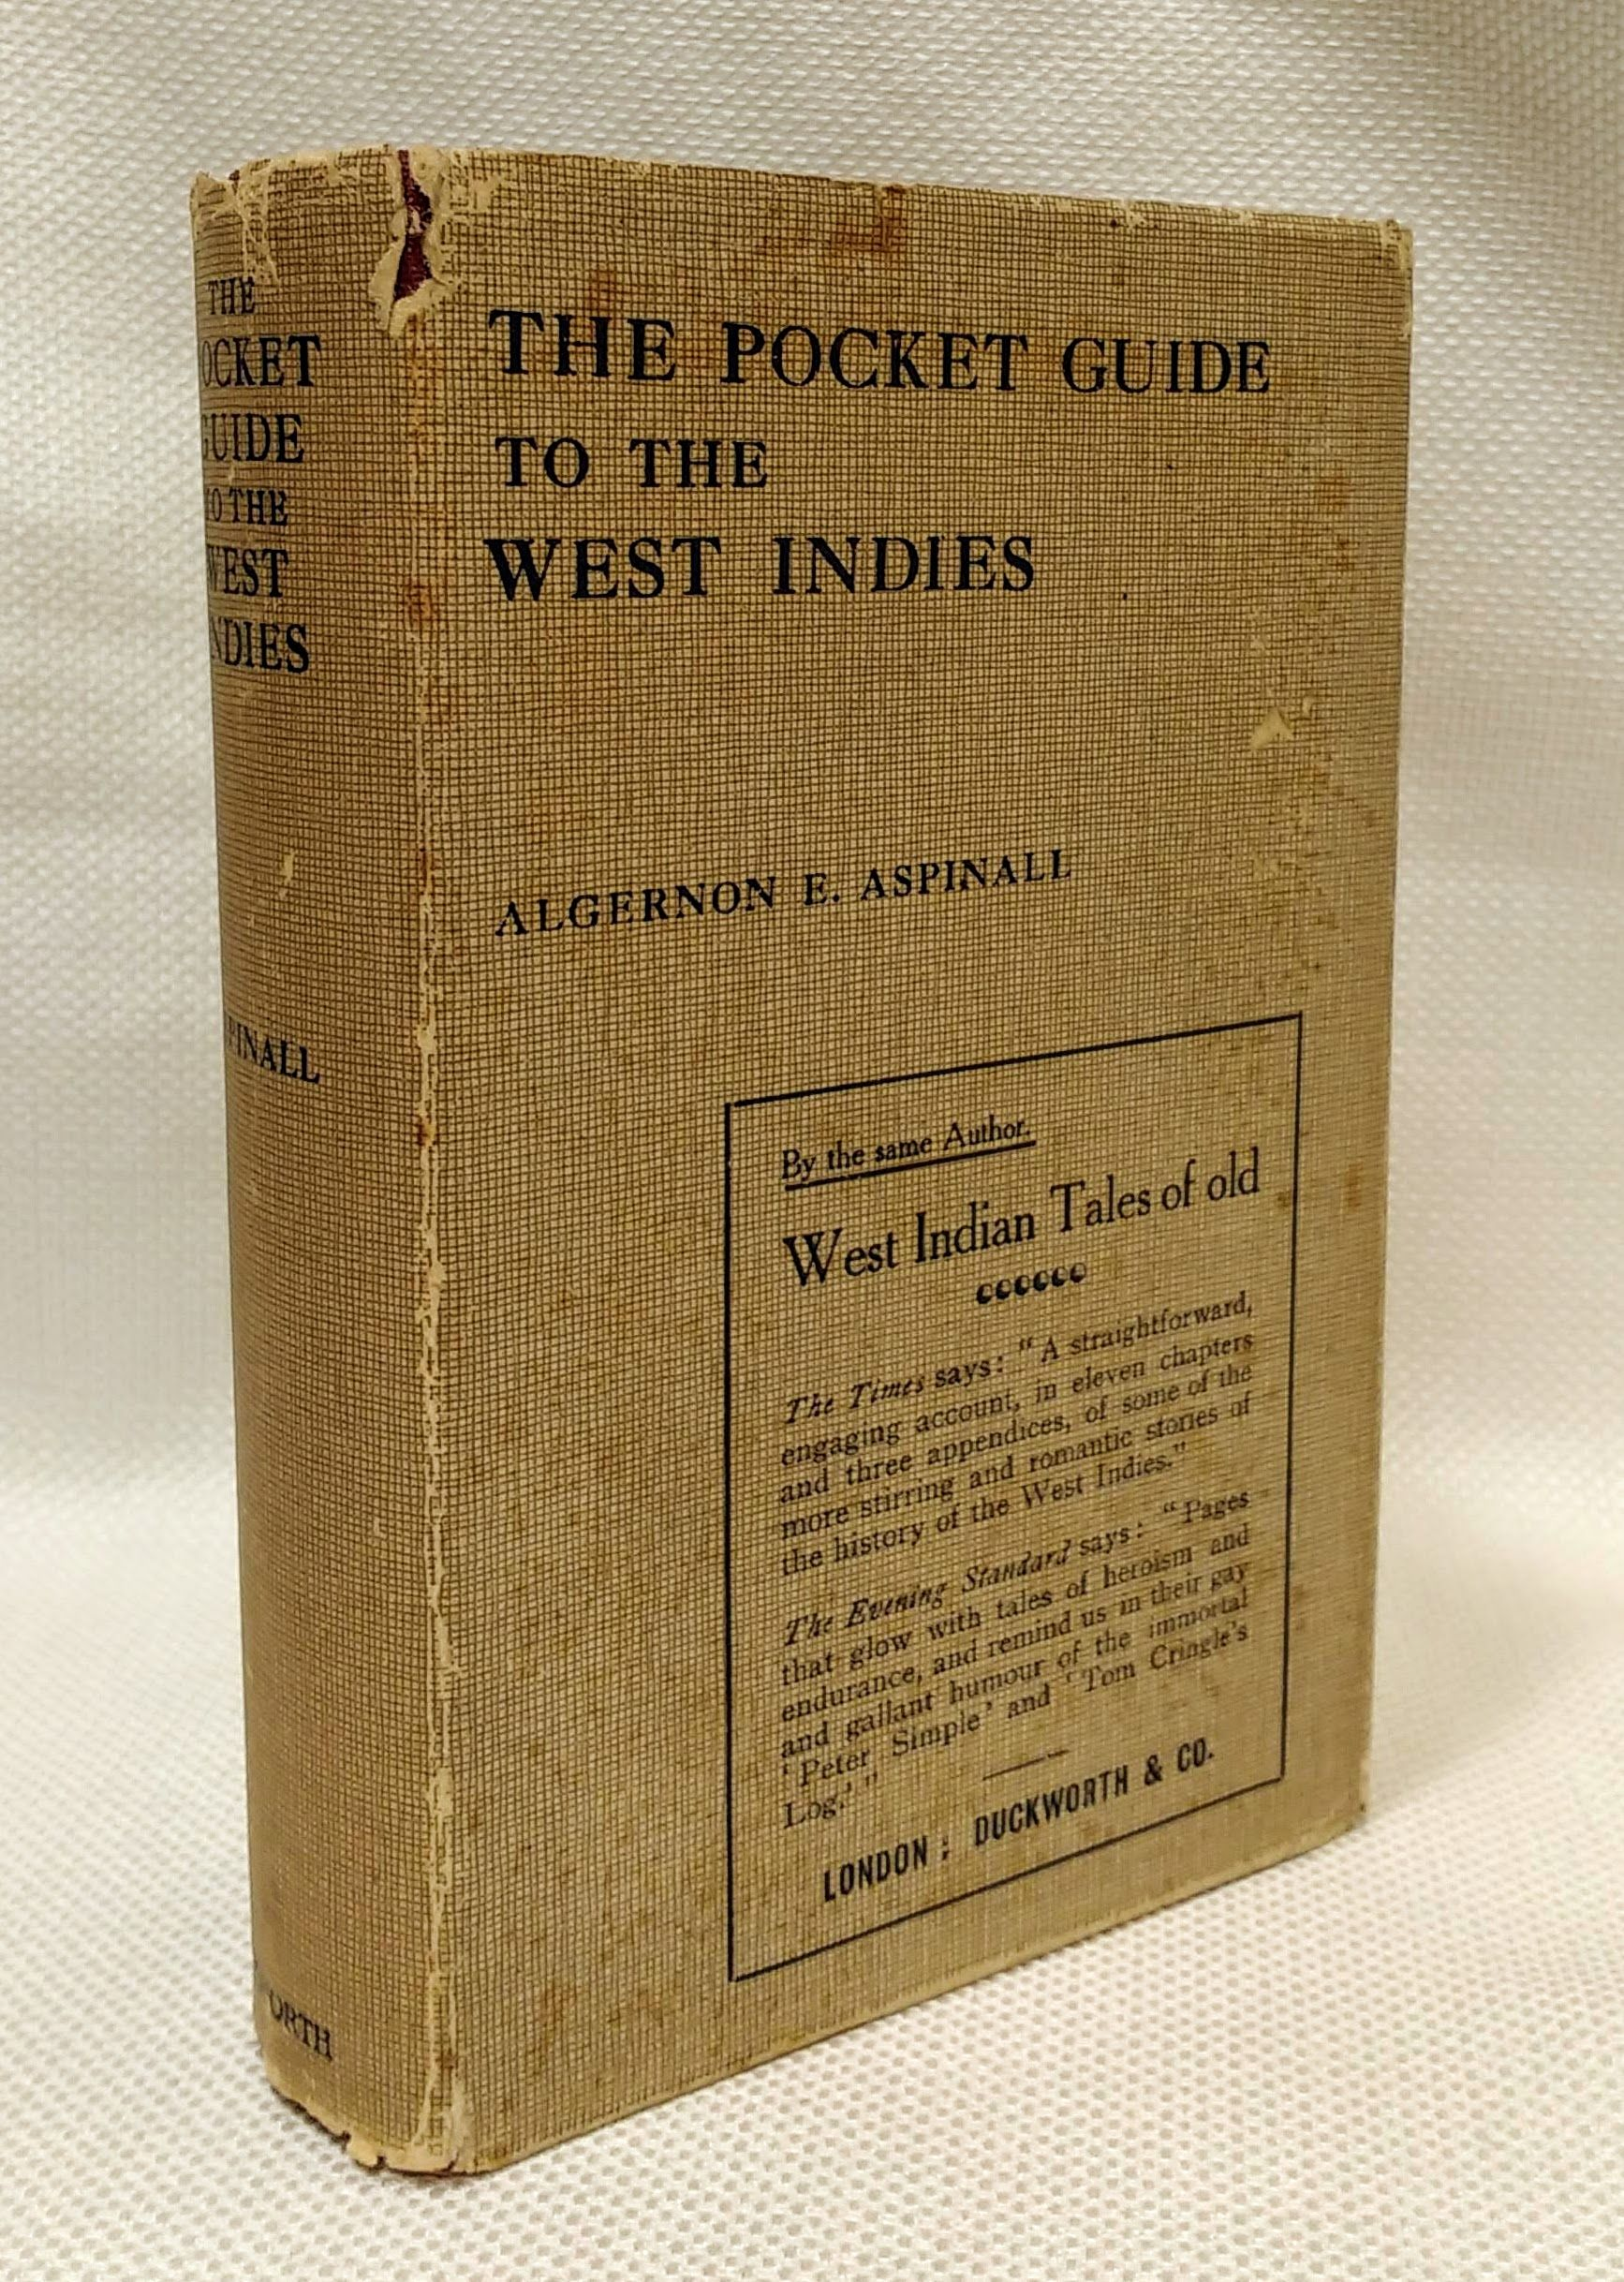 The Pocket Guide to the West indies [New and Revised edition, 1914], Aspinall, Algernon